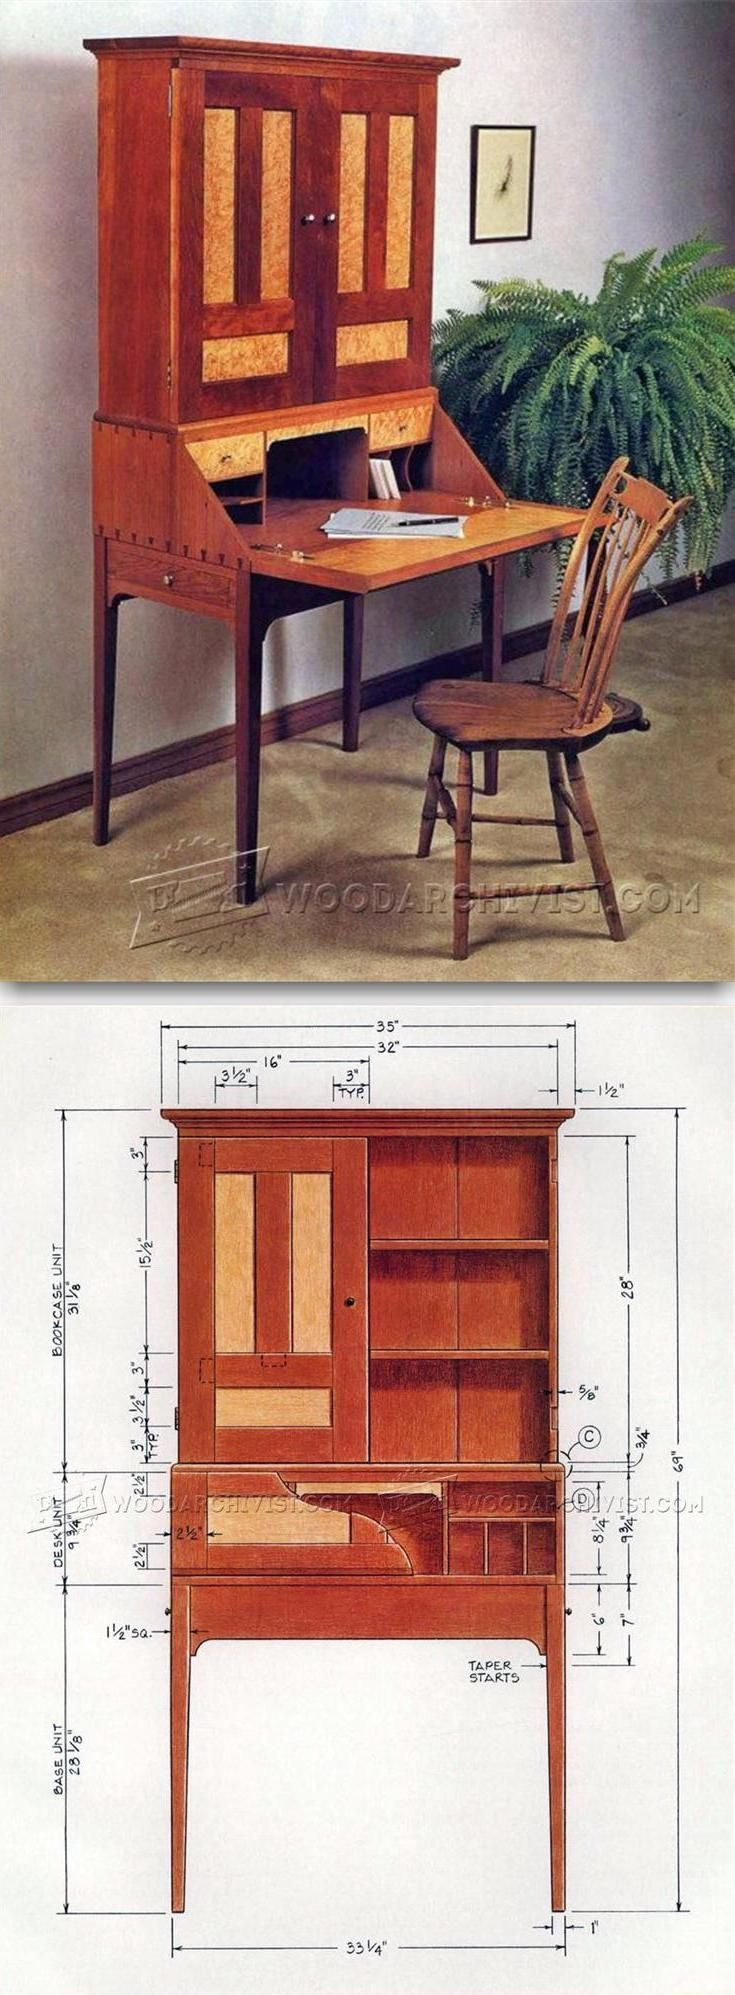 Drop Front Desk Plans - Furniture Plans and Projects | WoodArchivist.com